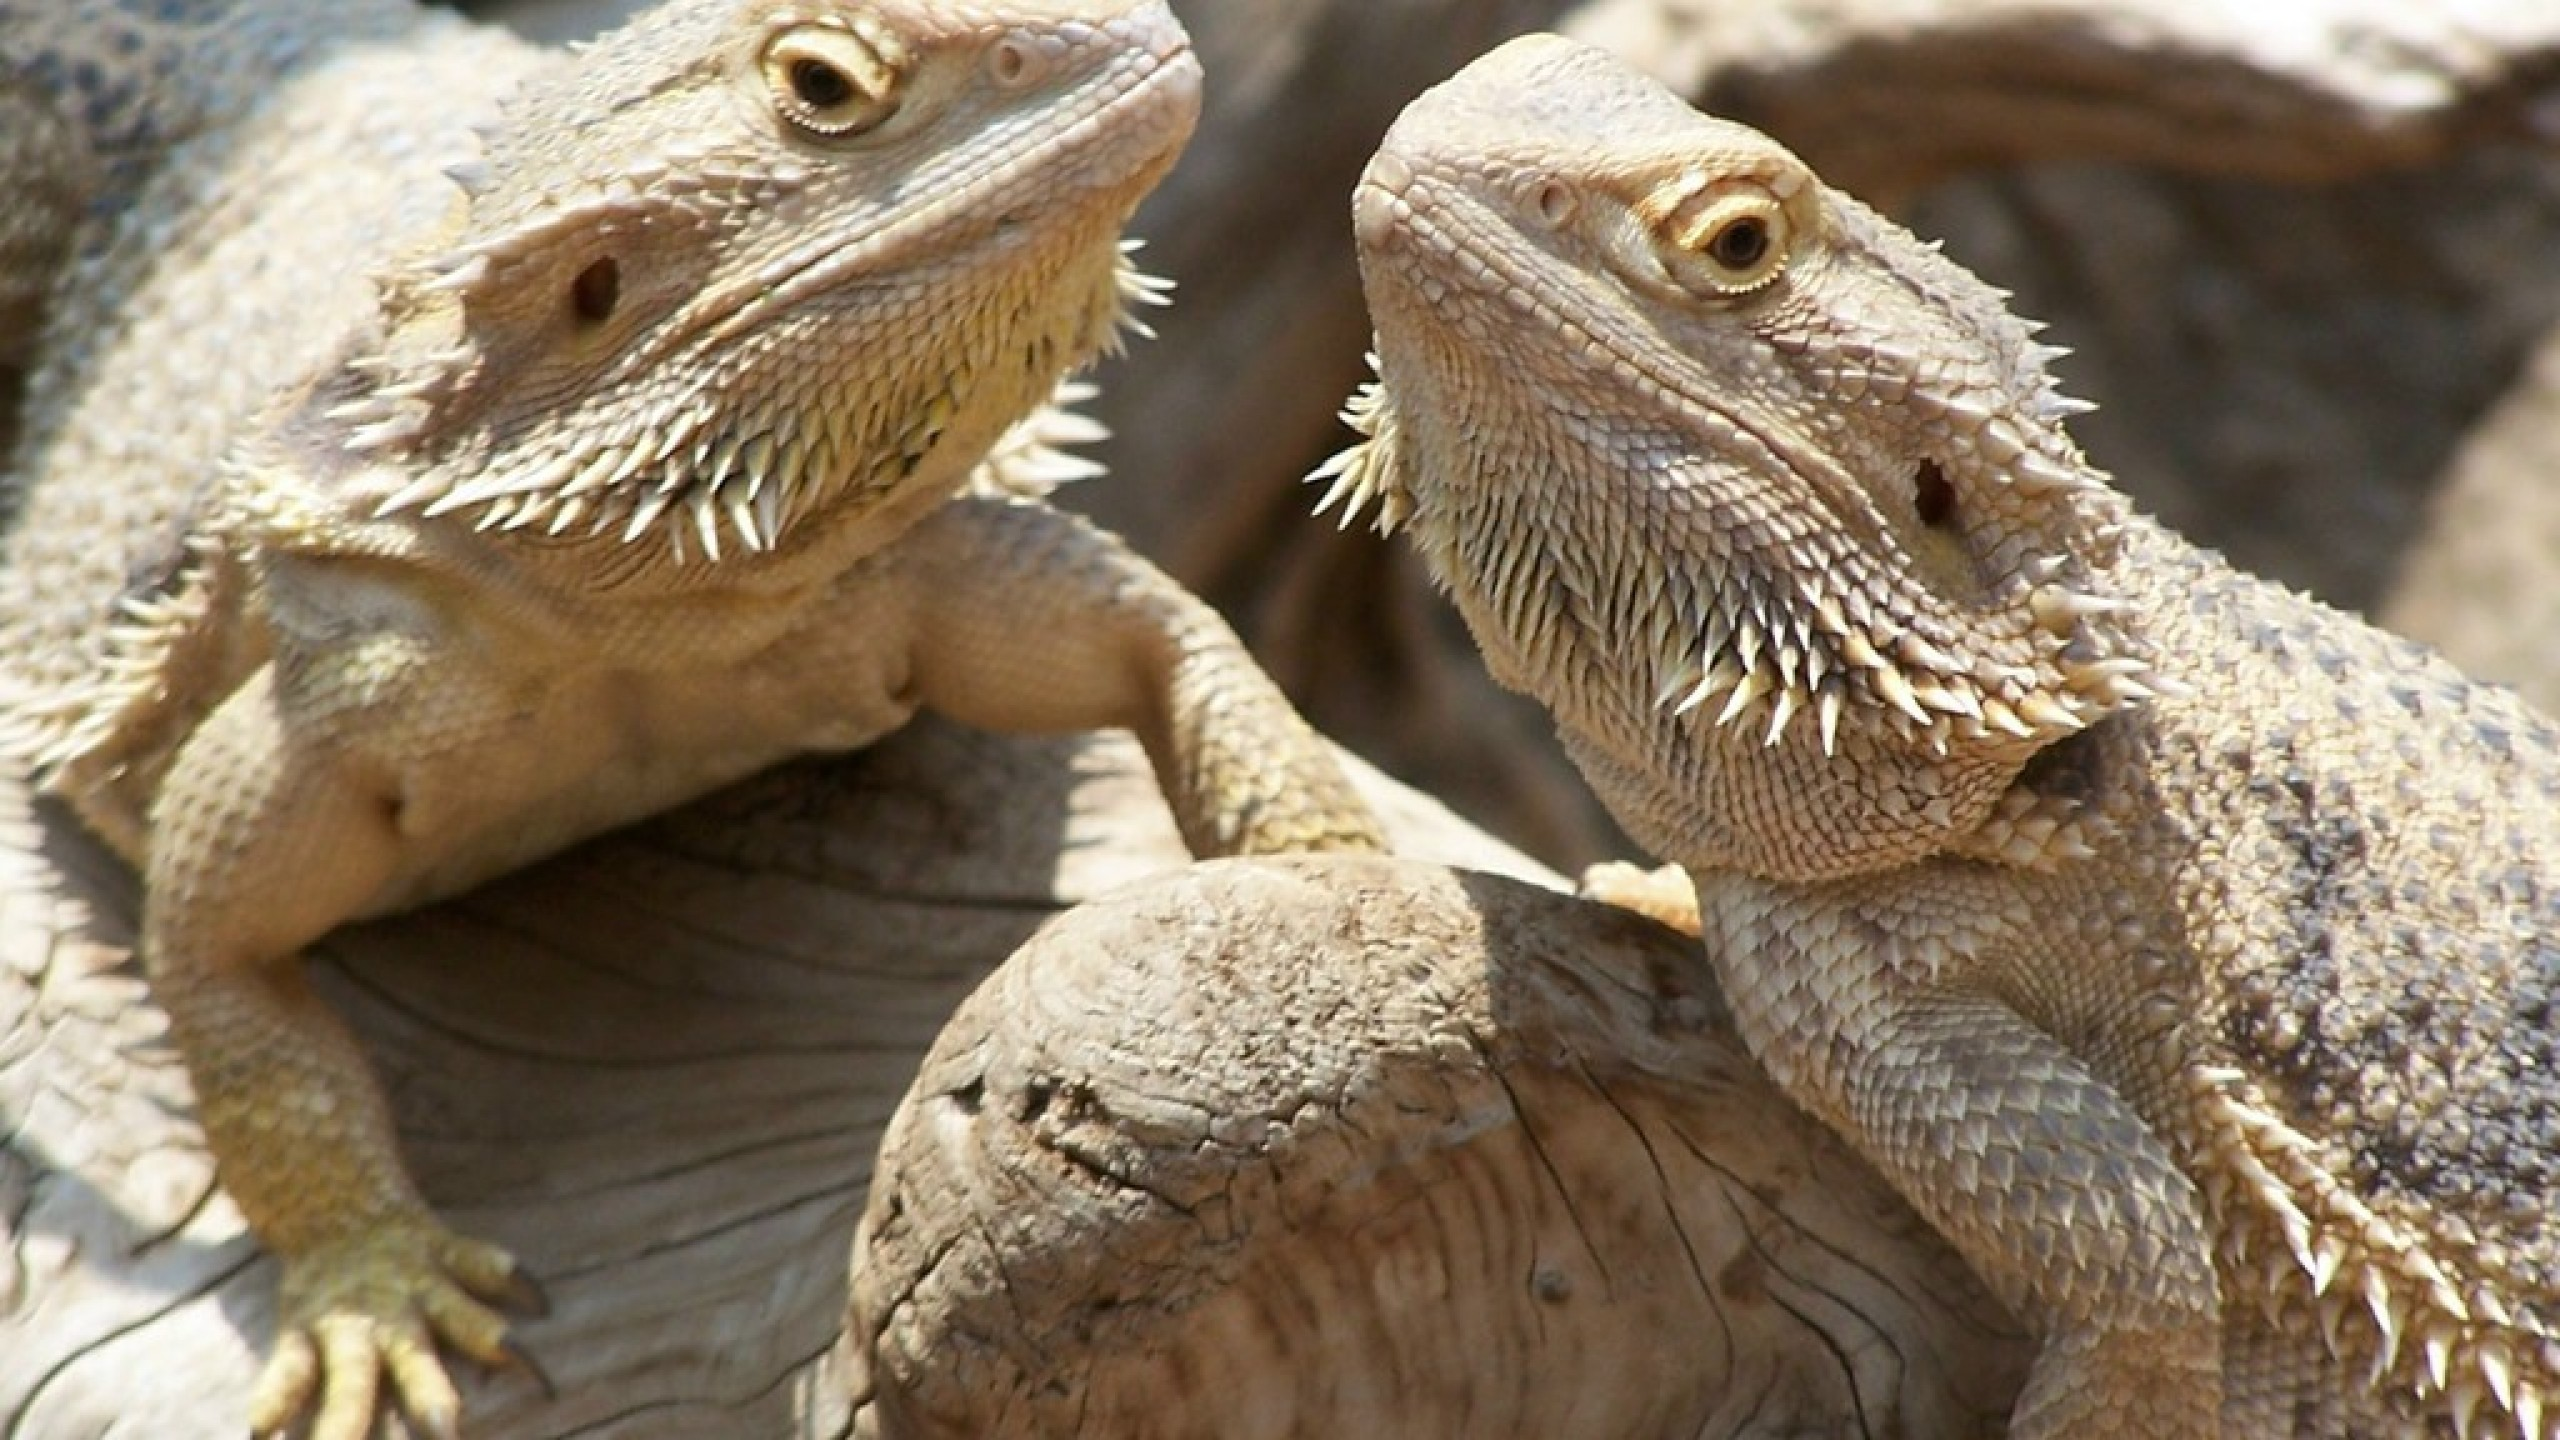 Bearded dragons larawan bearded dragons hd wolpeyper and background bearded dragons images bearded dragons hd wallpaper and background photos voltagebd Choice Image